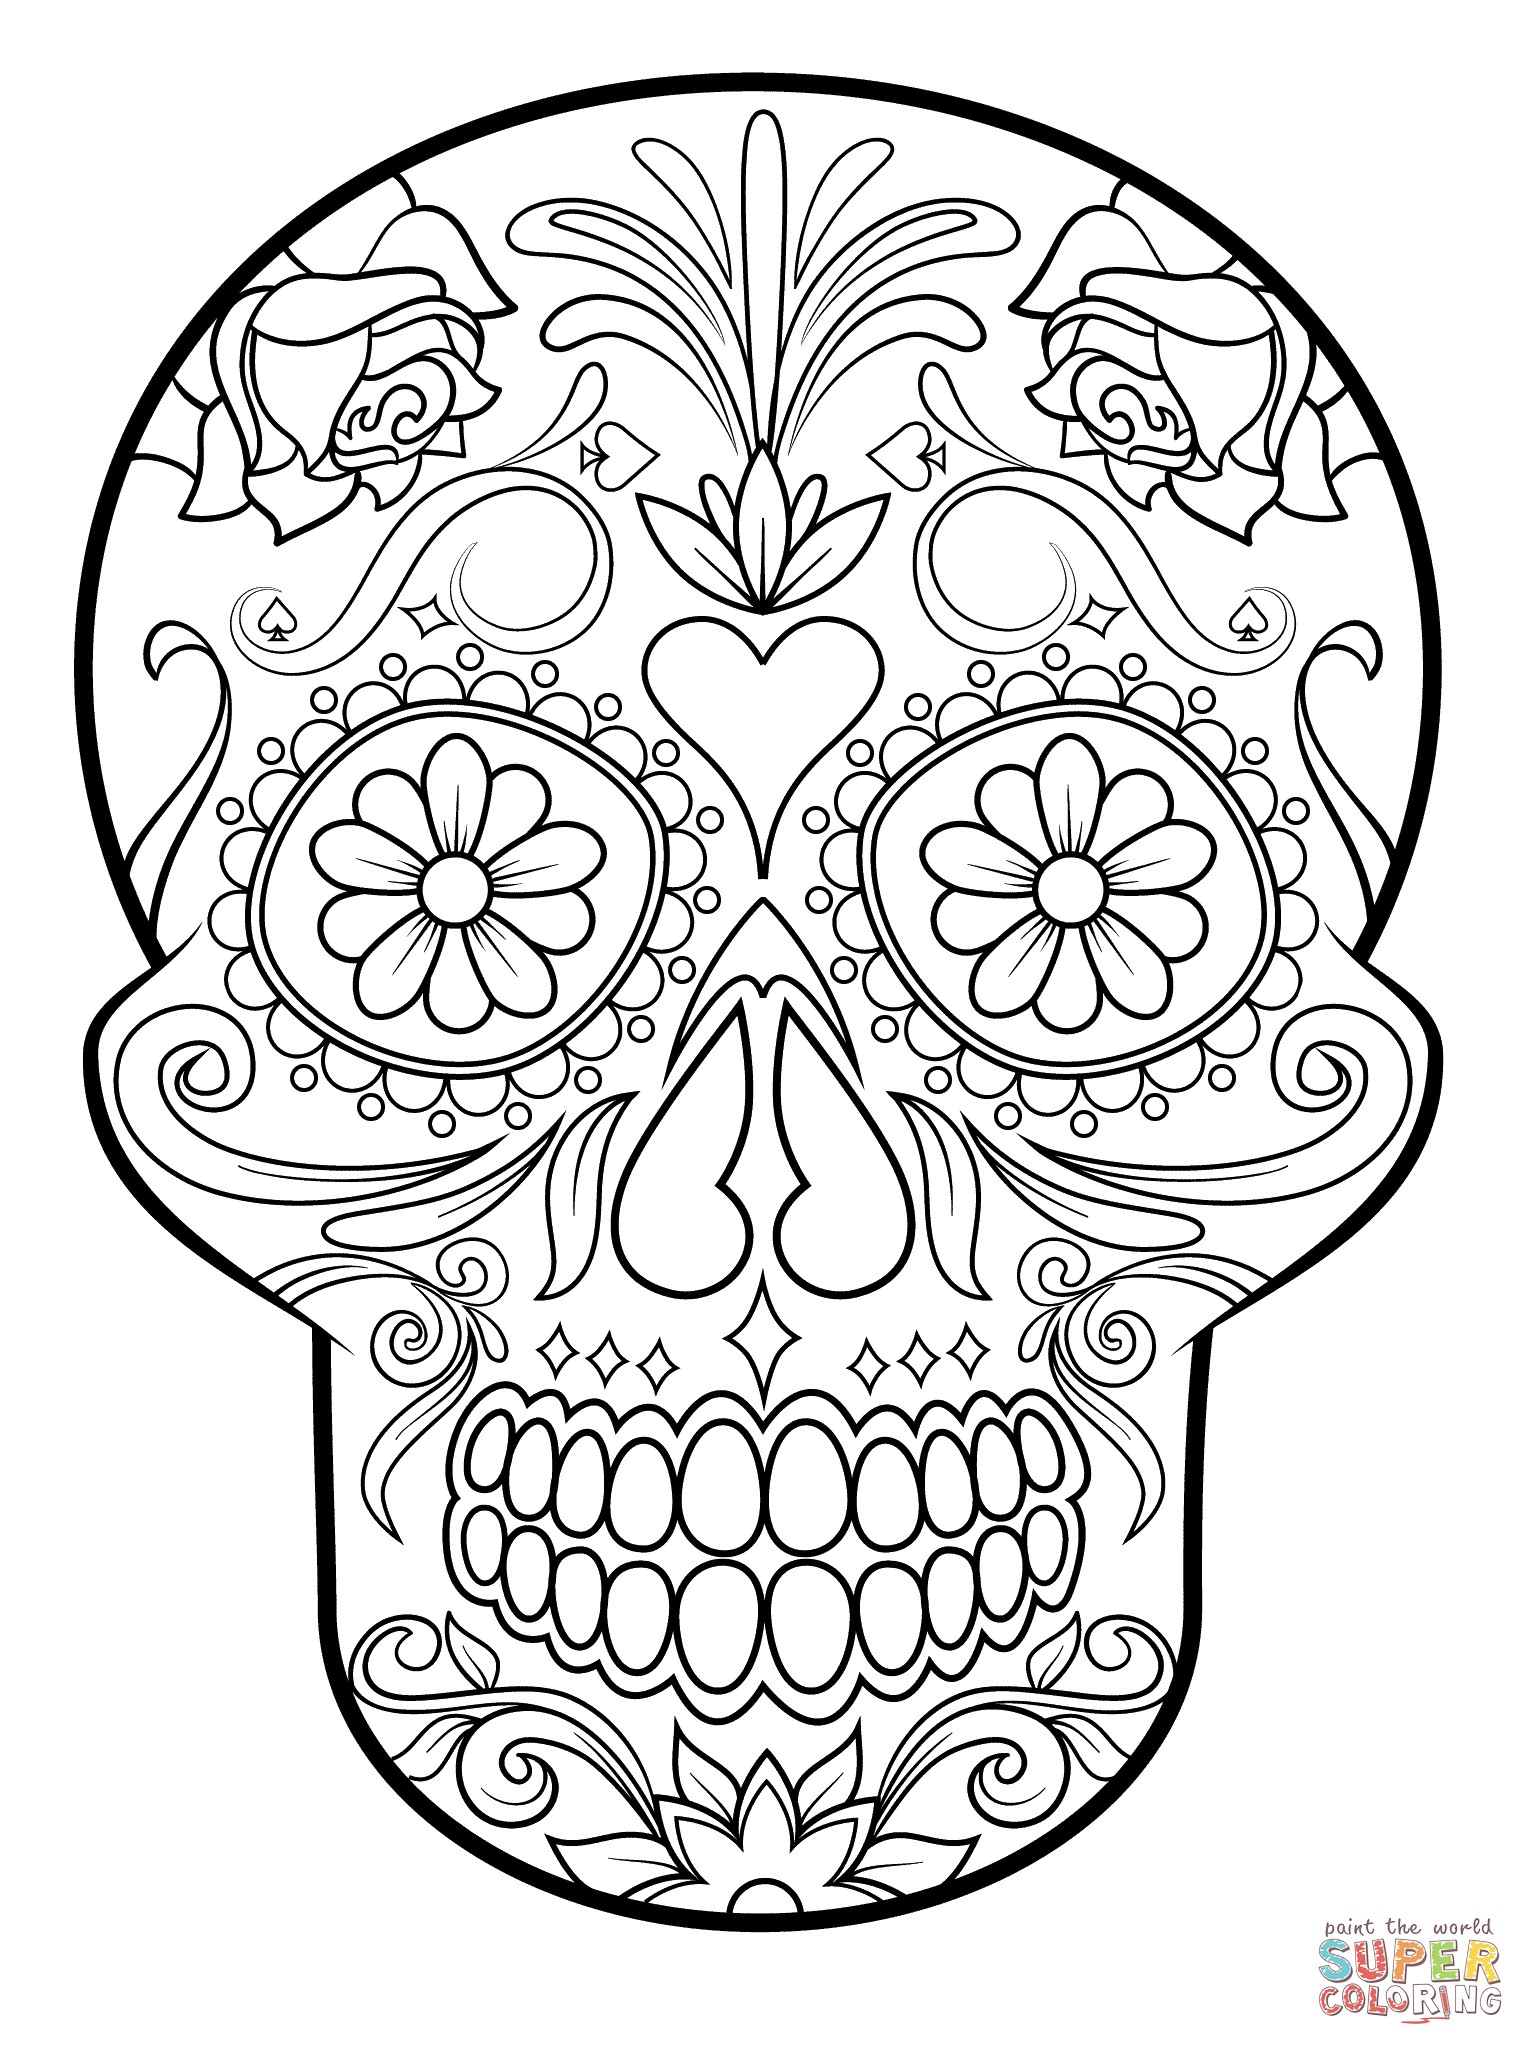 - Adult Free Coloring Pages Pleasant Idea Sugar Skull Printable